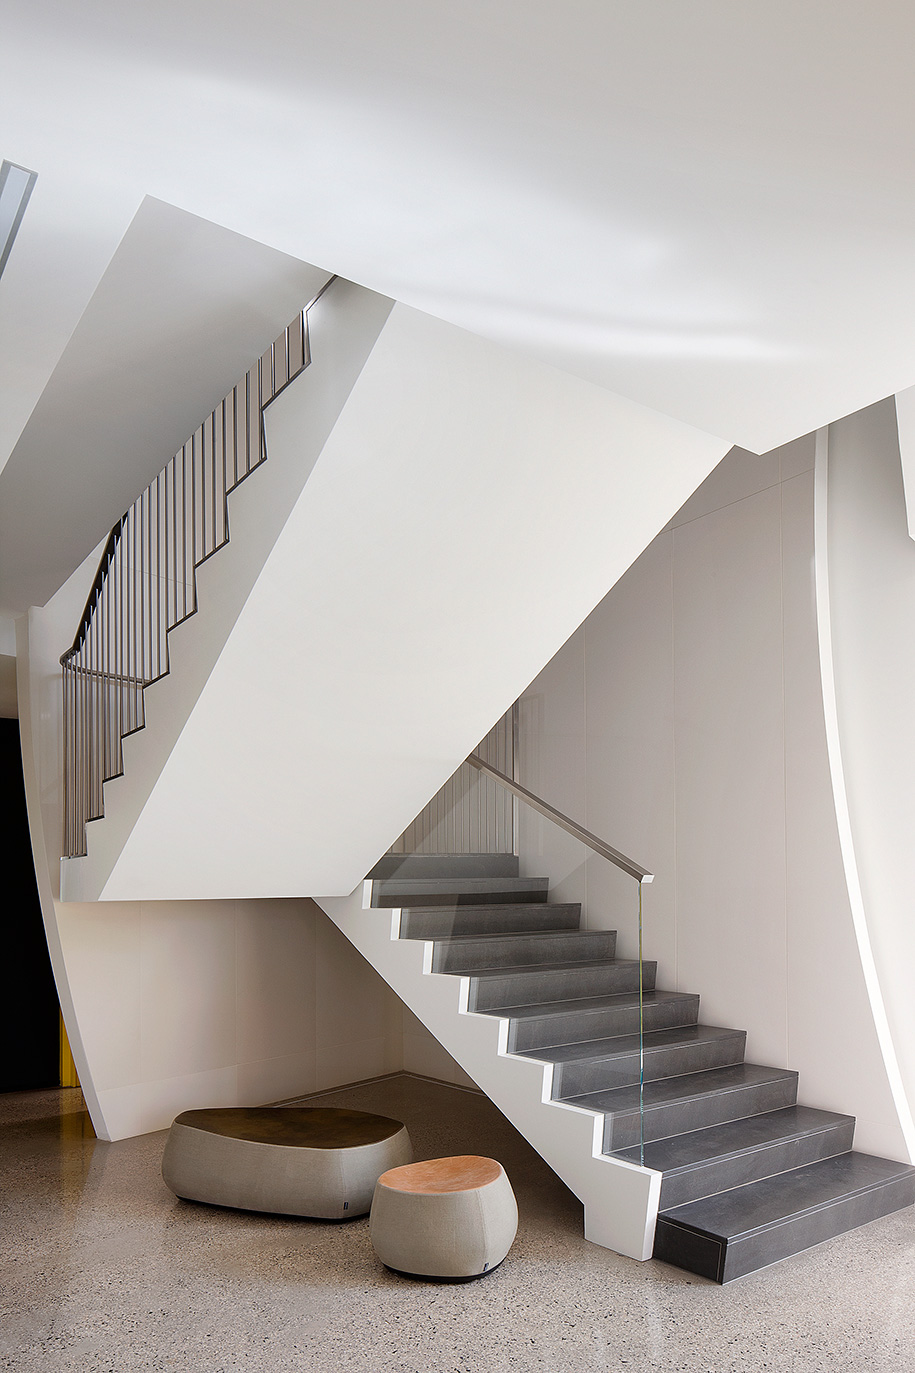 Field House Robert Puksand staircase